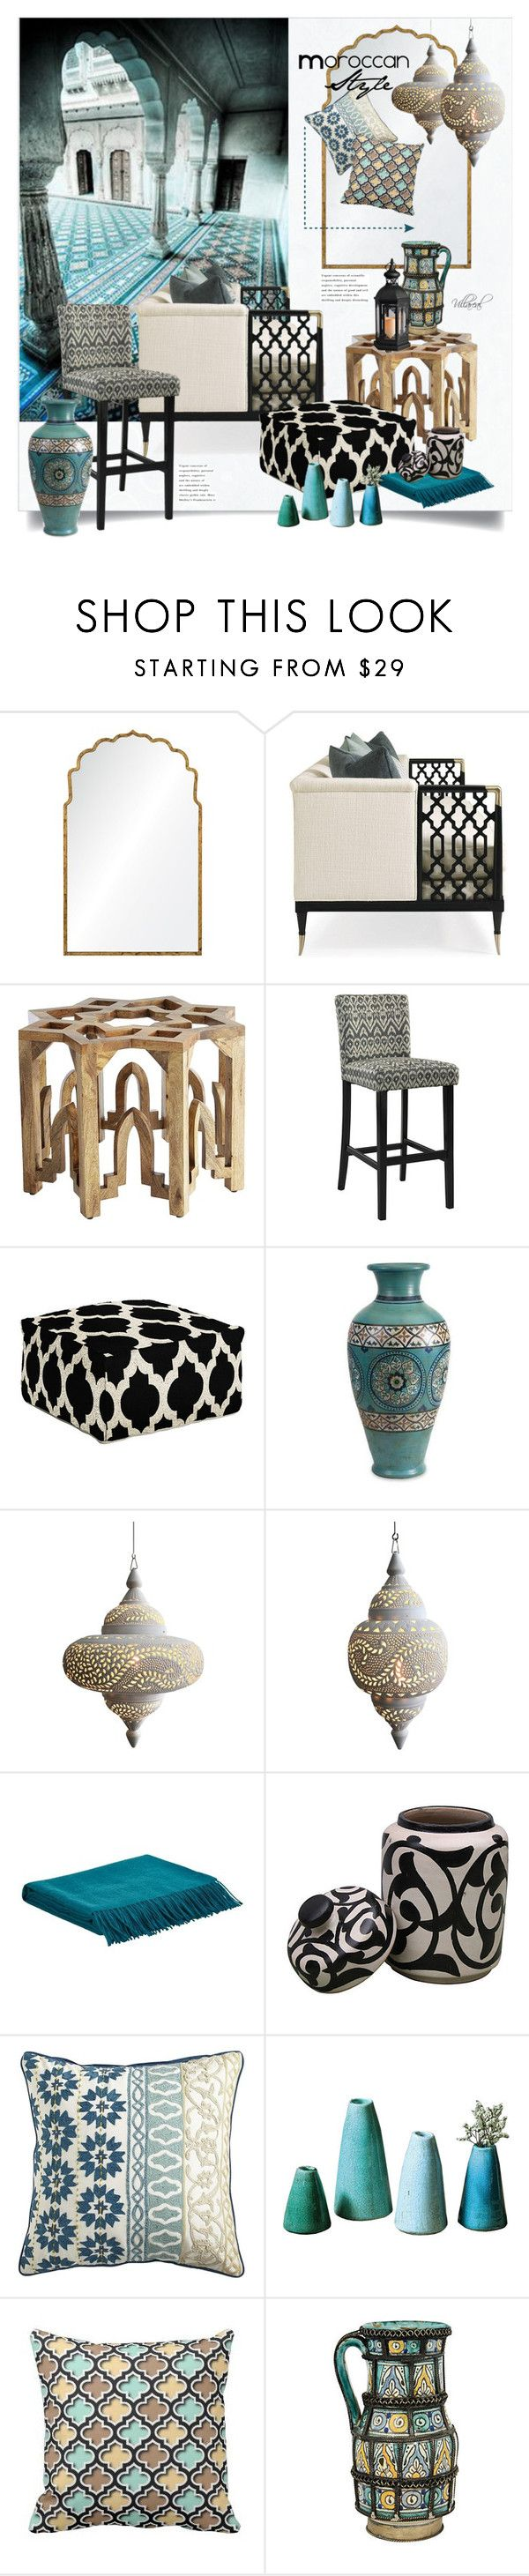 """məˈrɒkən"" by riza-villareal ❤ liked on Polyvore featuring interior, interiors, interior design, maison, home decor, interior decorating, Mirror Image Home, Surya, Imax Home et Yves Delorme"